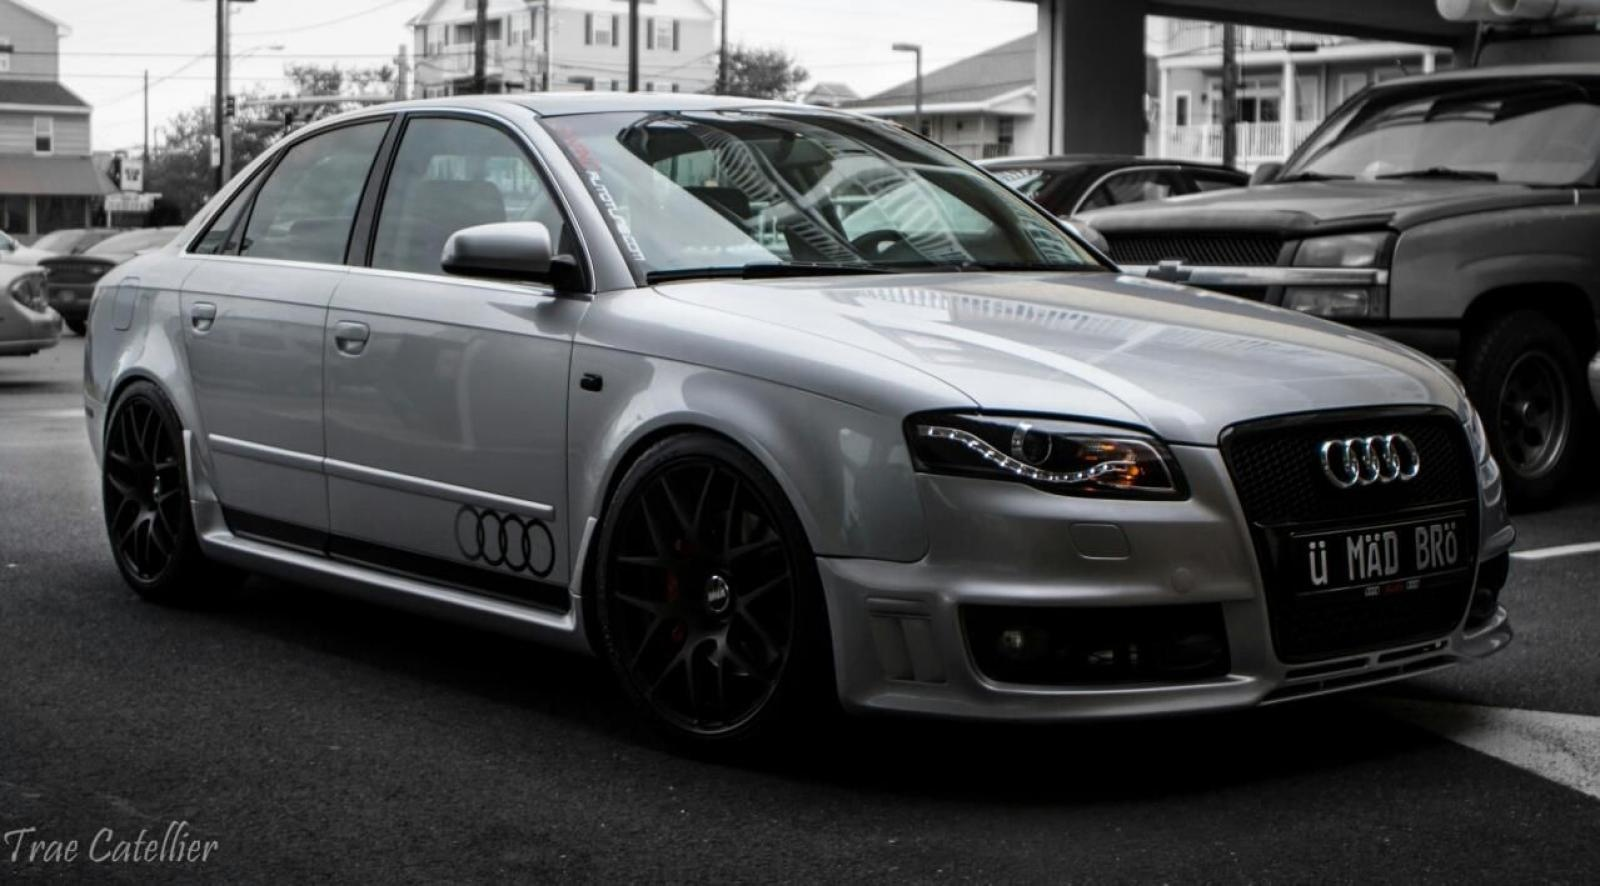 Modified Audi A4 for Sale New 2007 Audi A4 Information and Photos Zombiedrive-1710 Of Lovely Modified Audi A4 for Sale